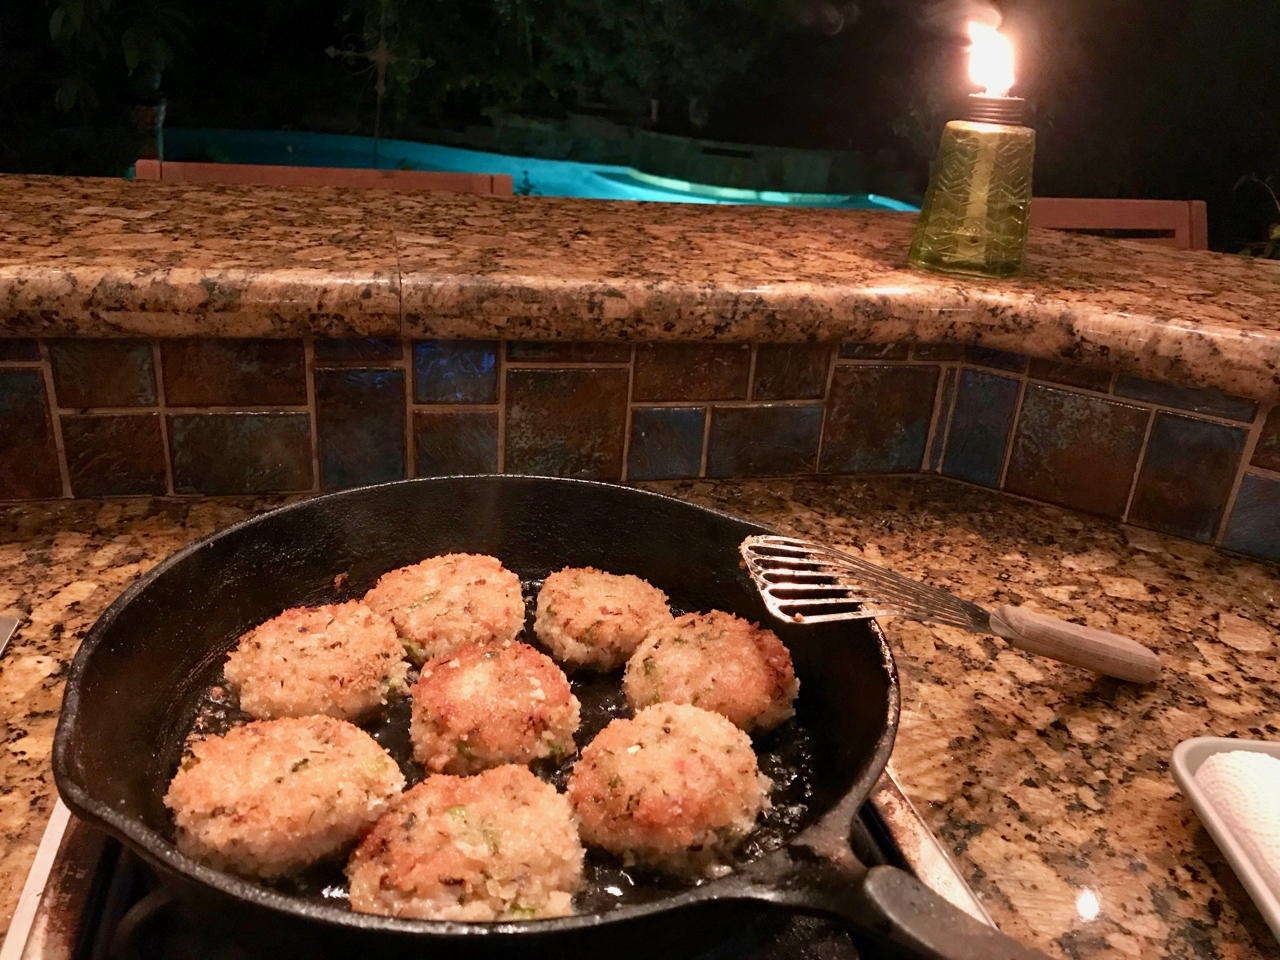 Risotto cakes in a cast iron skillet